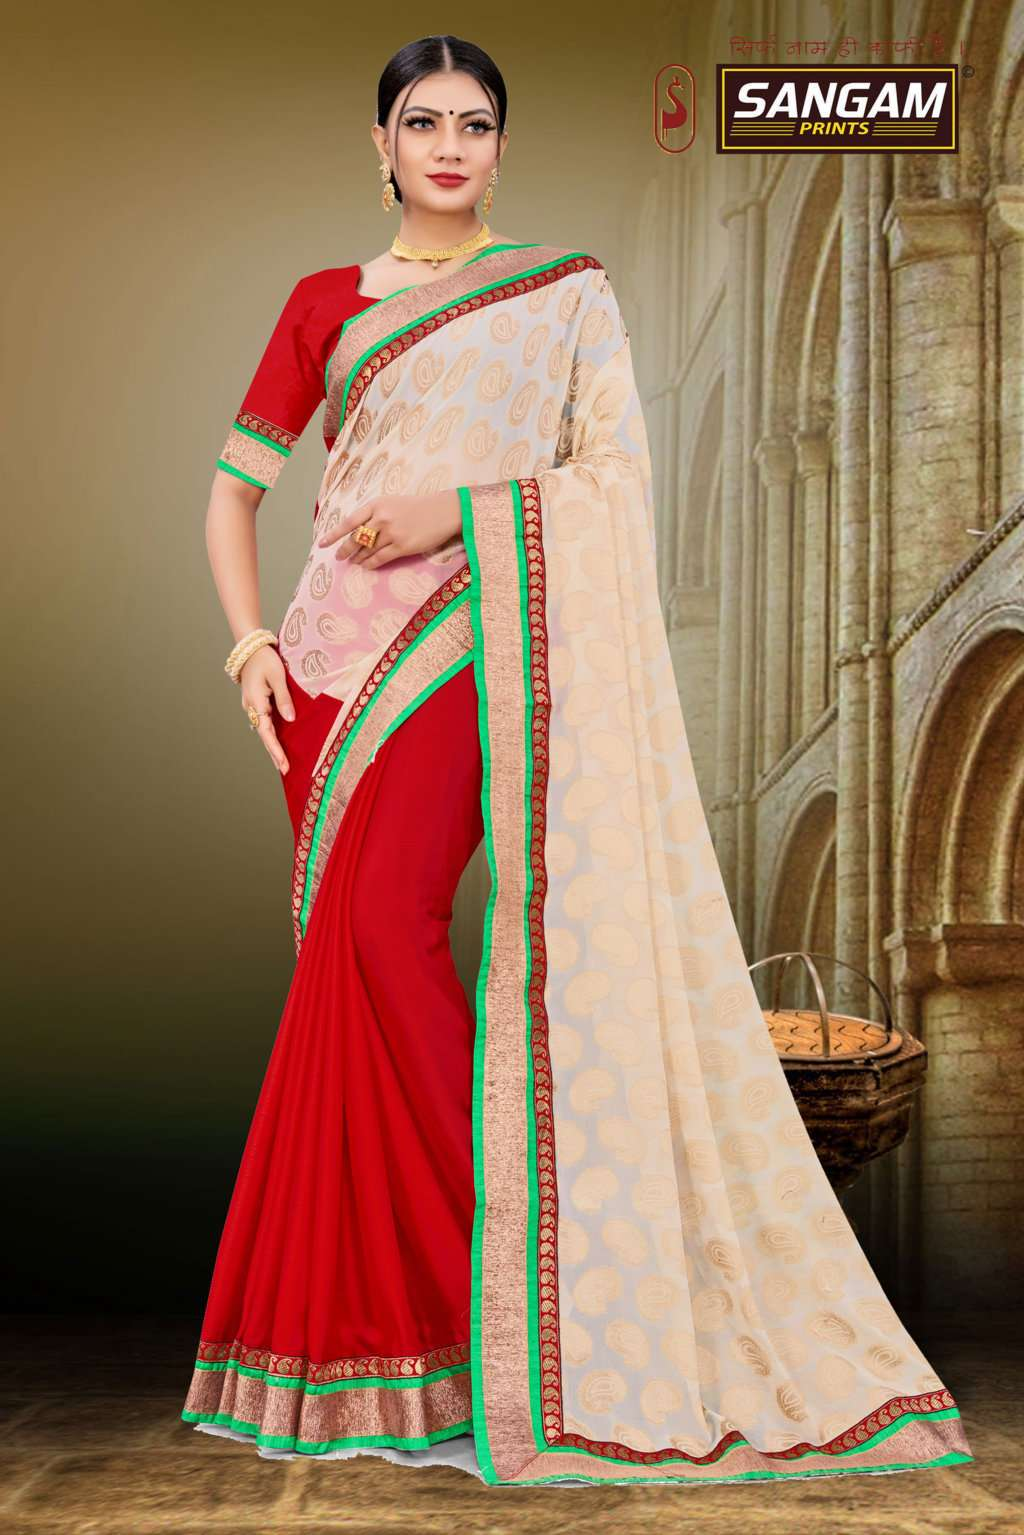 Sangam Kaashi 3 Casual Wear Georgette Sarees Collection